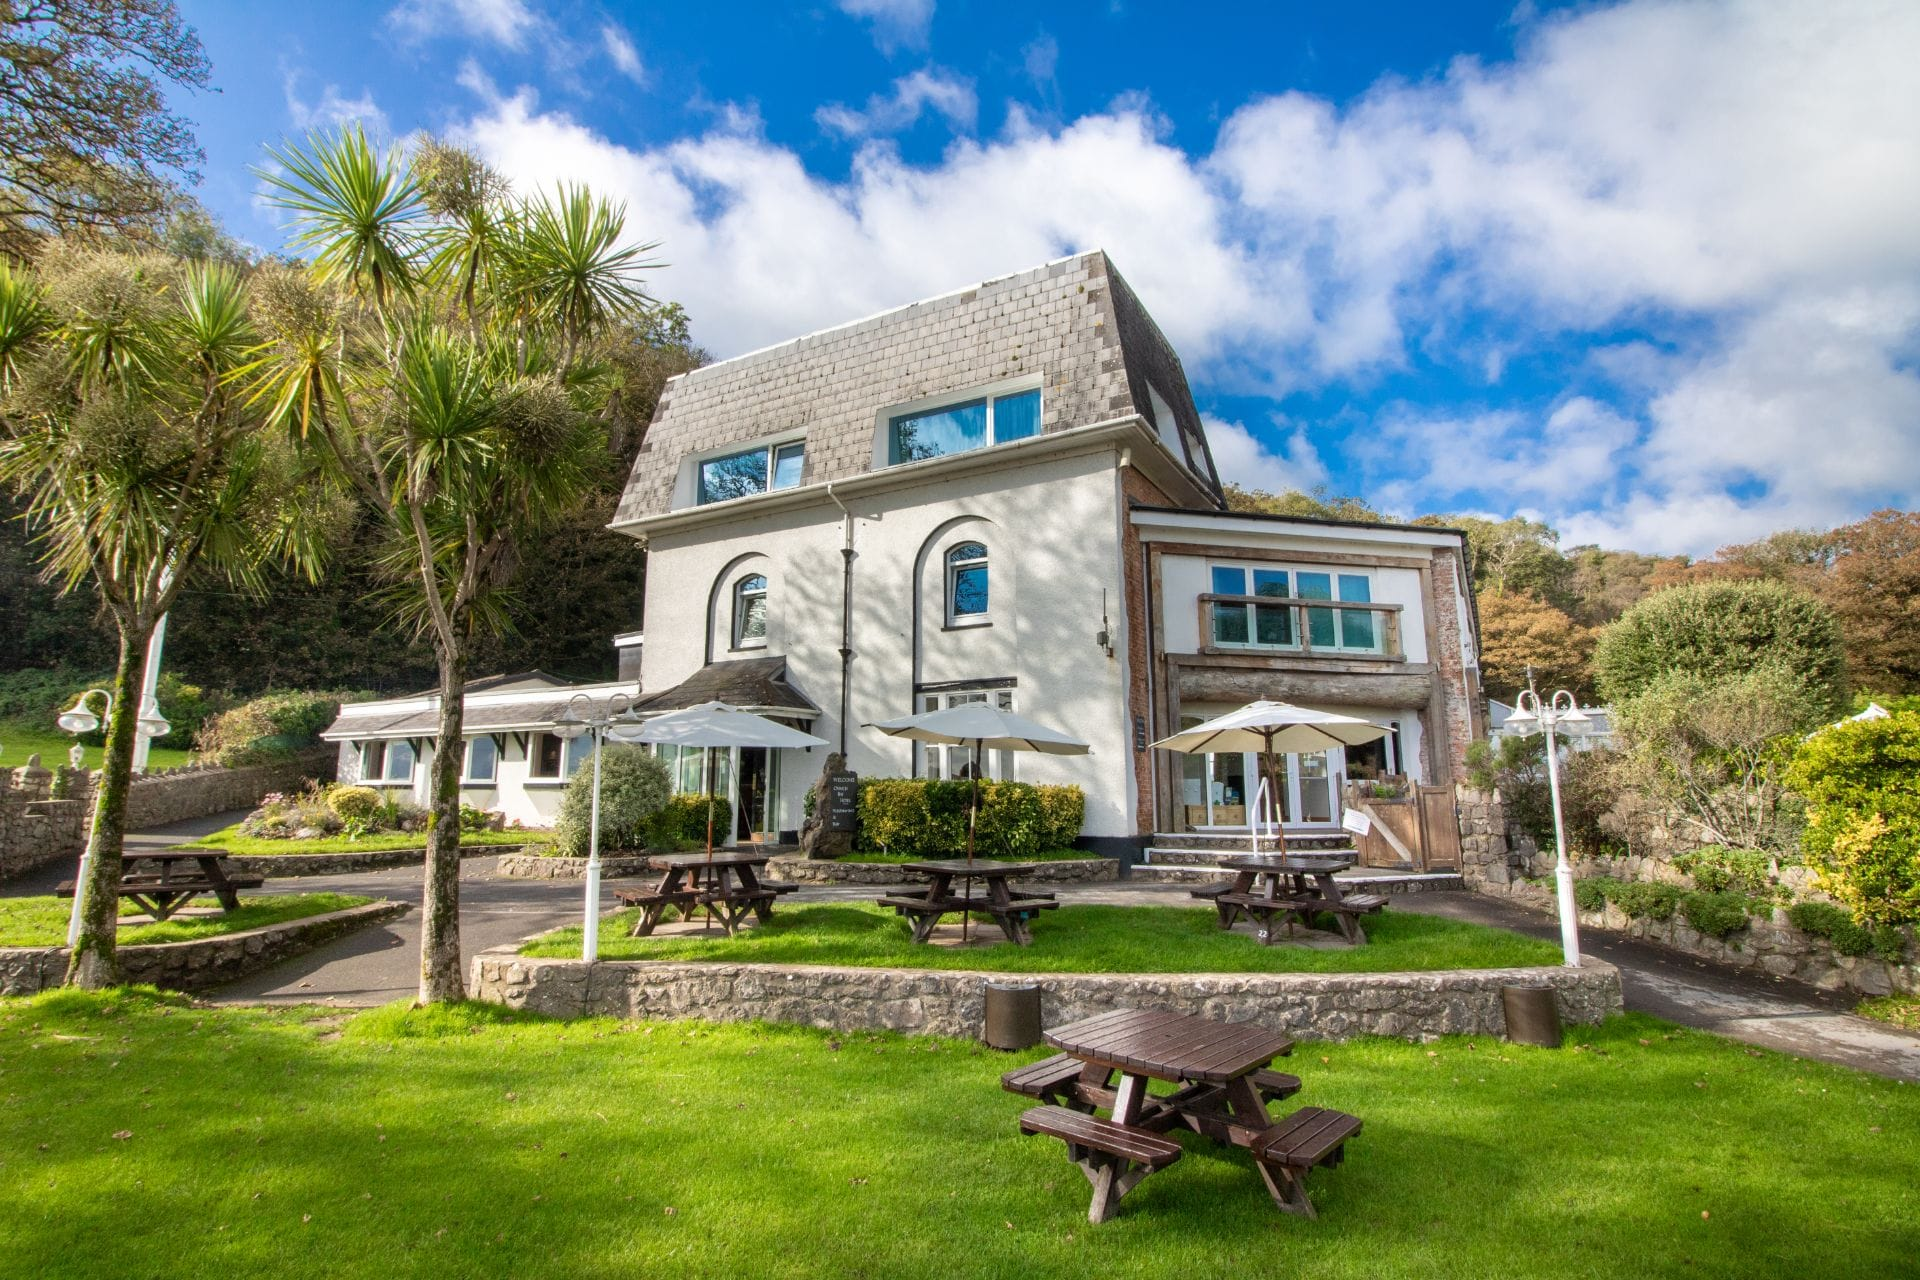 pub-garden-with-tables-and-palm-trees-in-front-of-hotel-in-summer-oxwich-bay-hotel